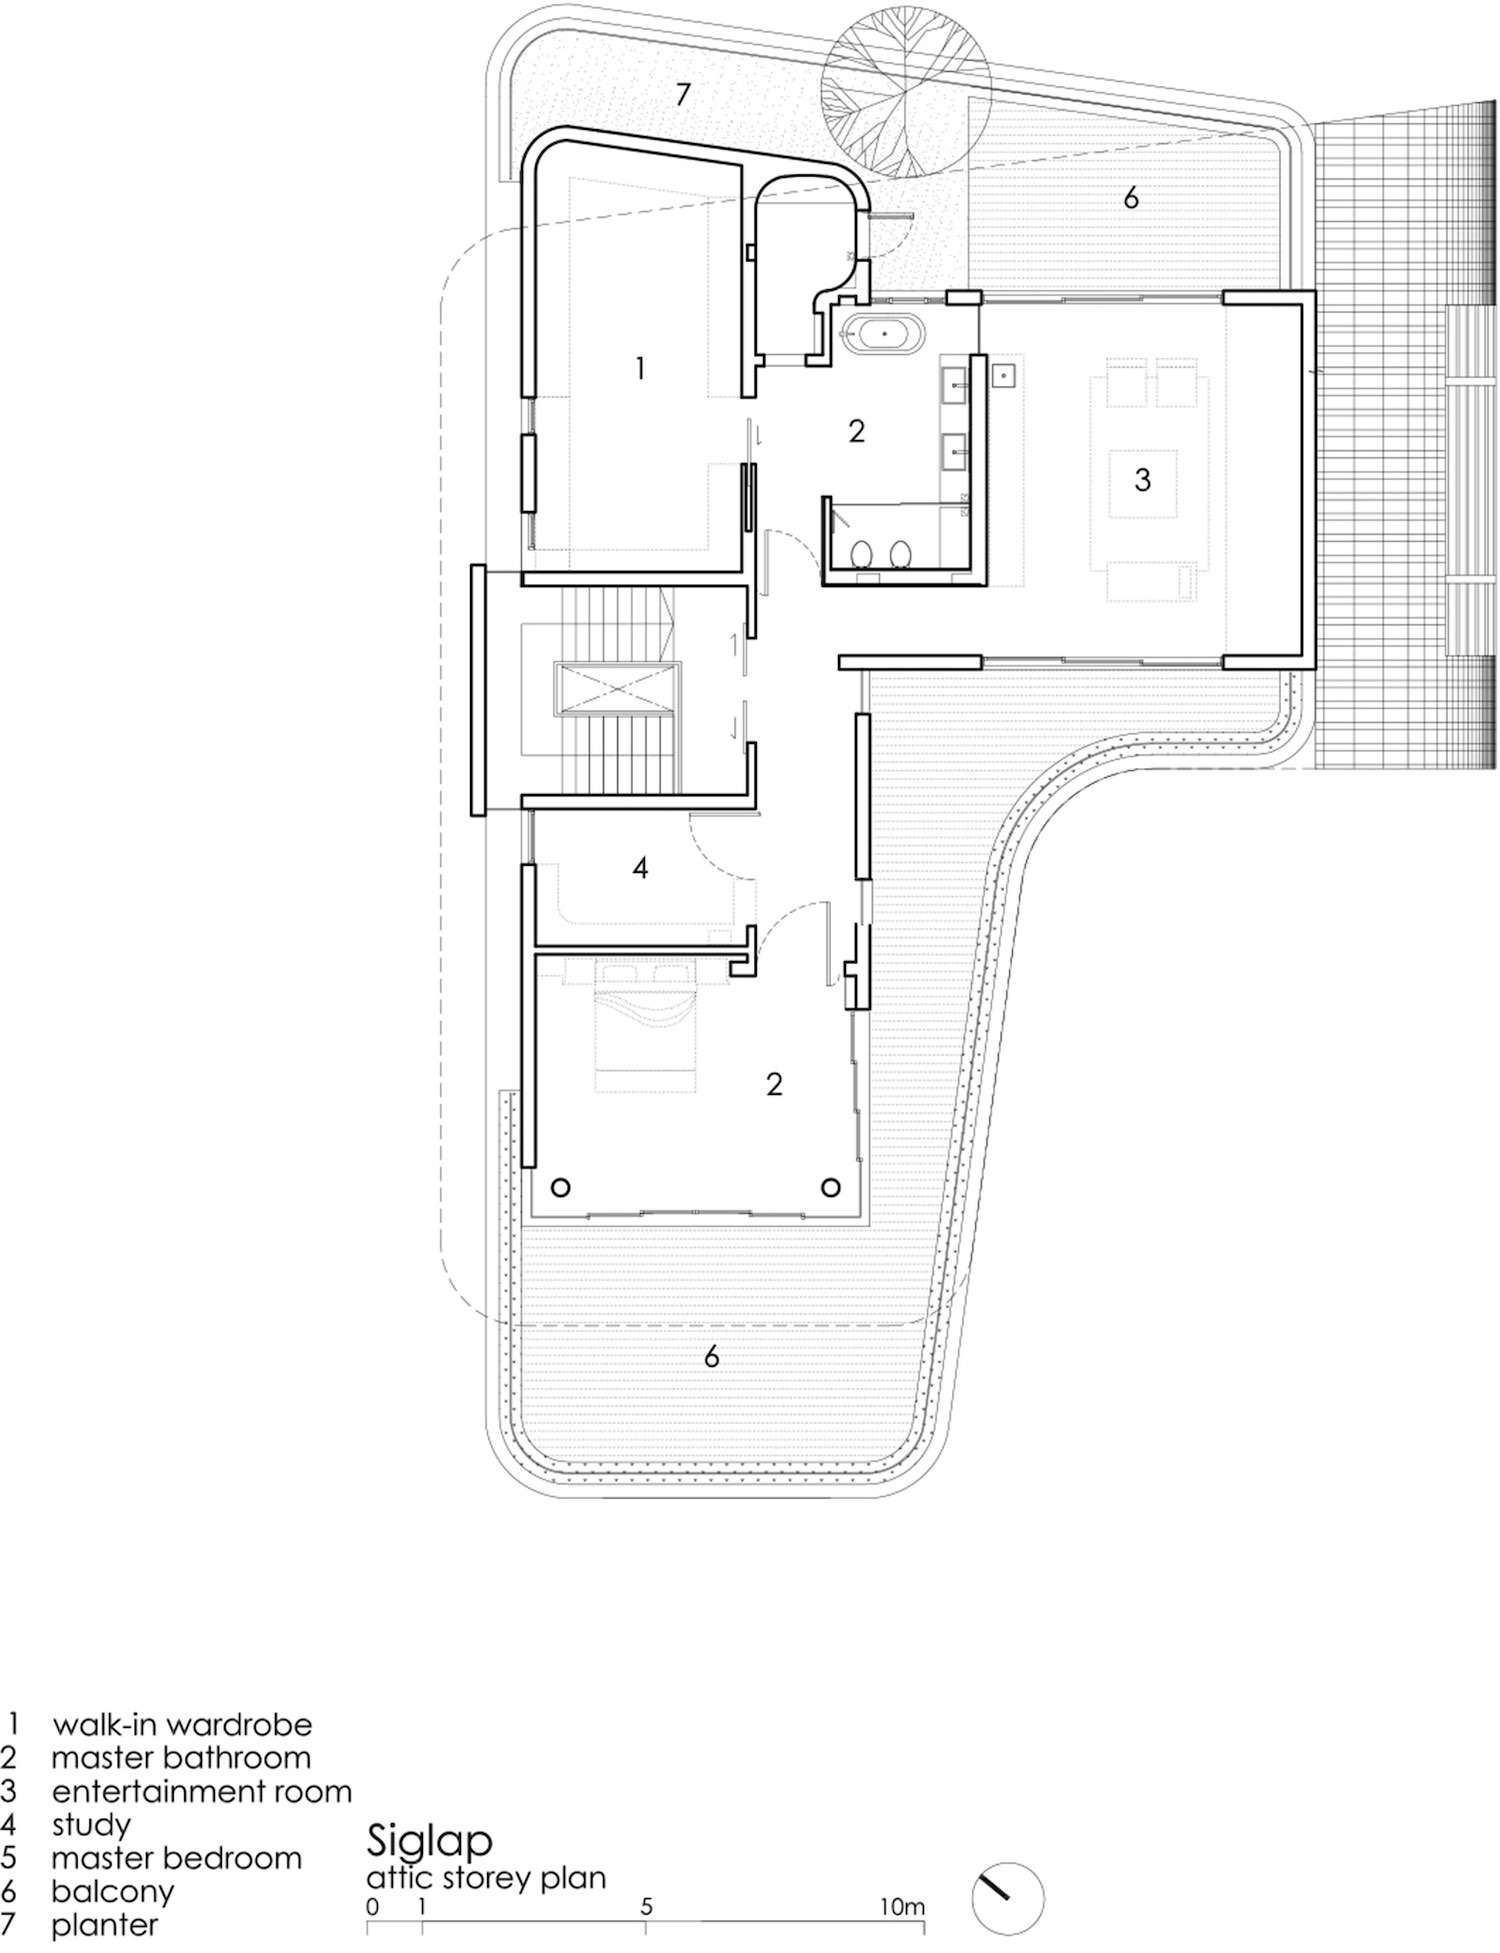 third floor plan drawing